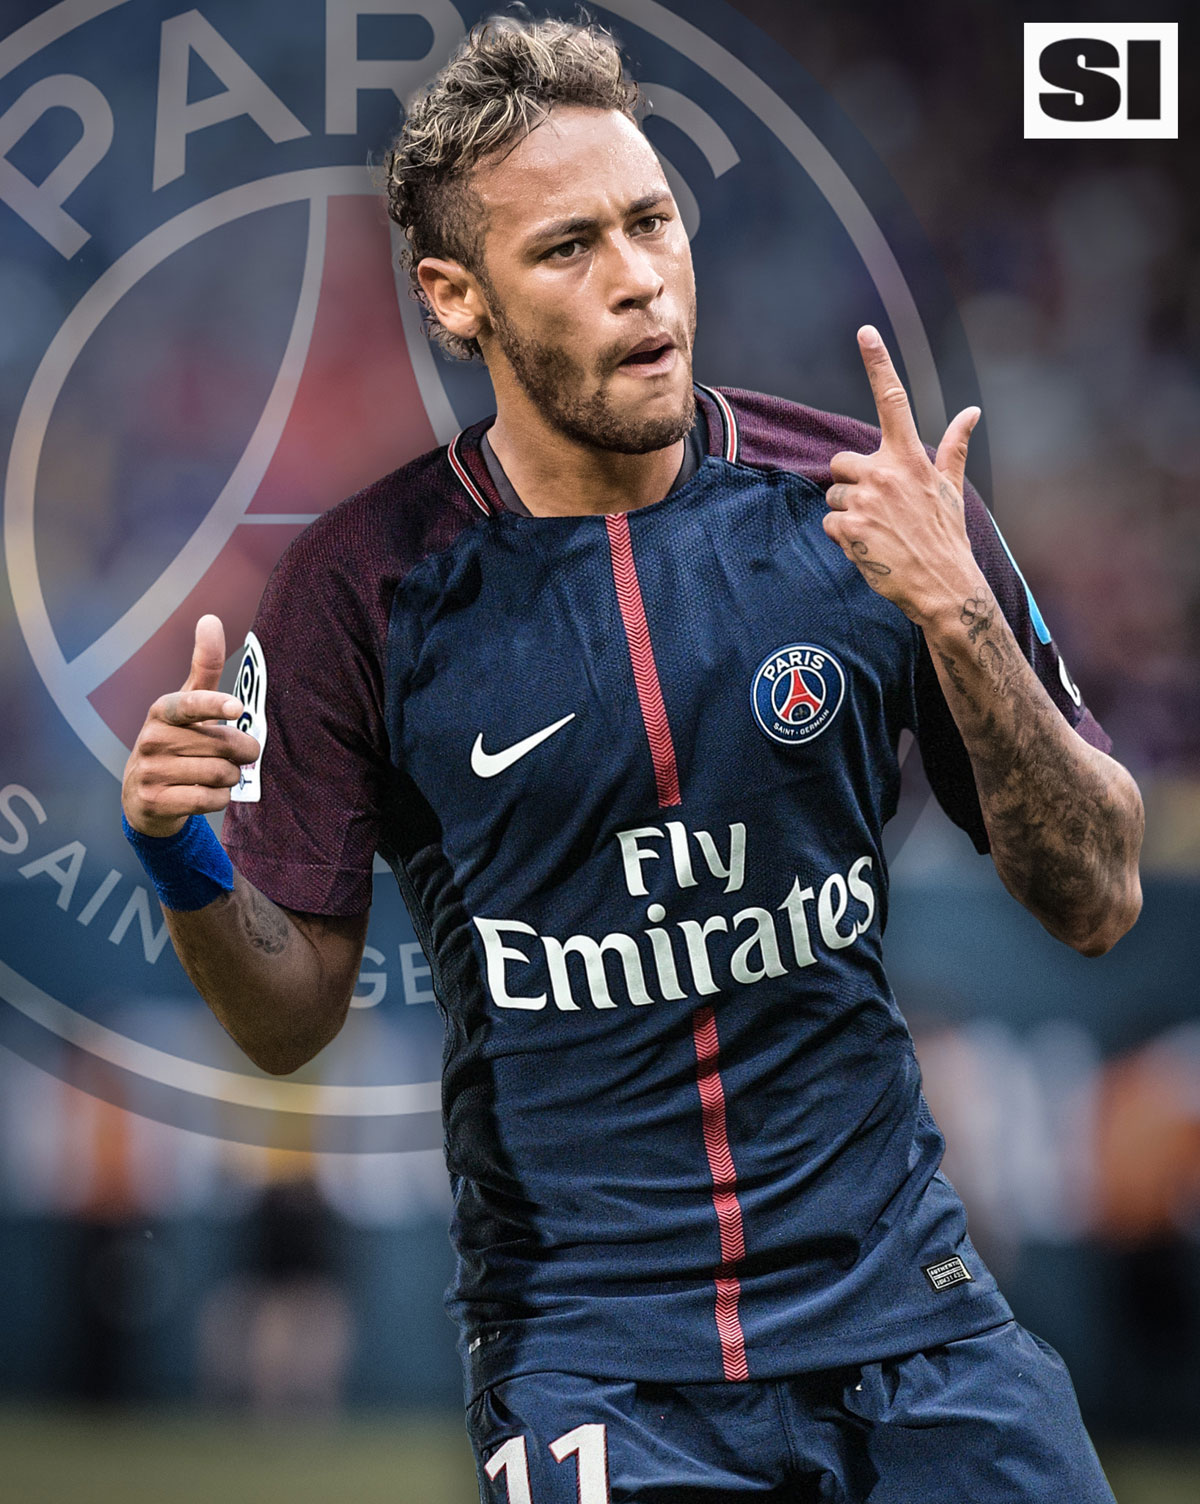 Neymar will join PSG from Barcelona in a record transfer